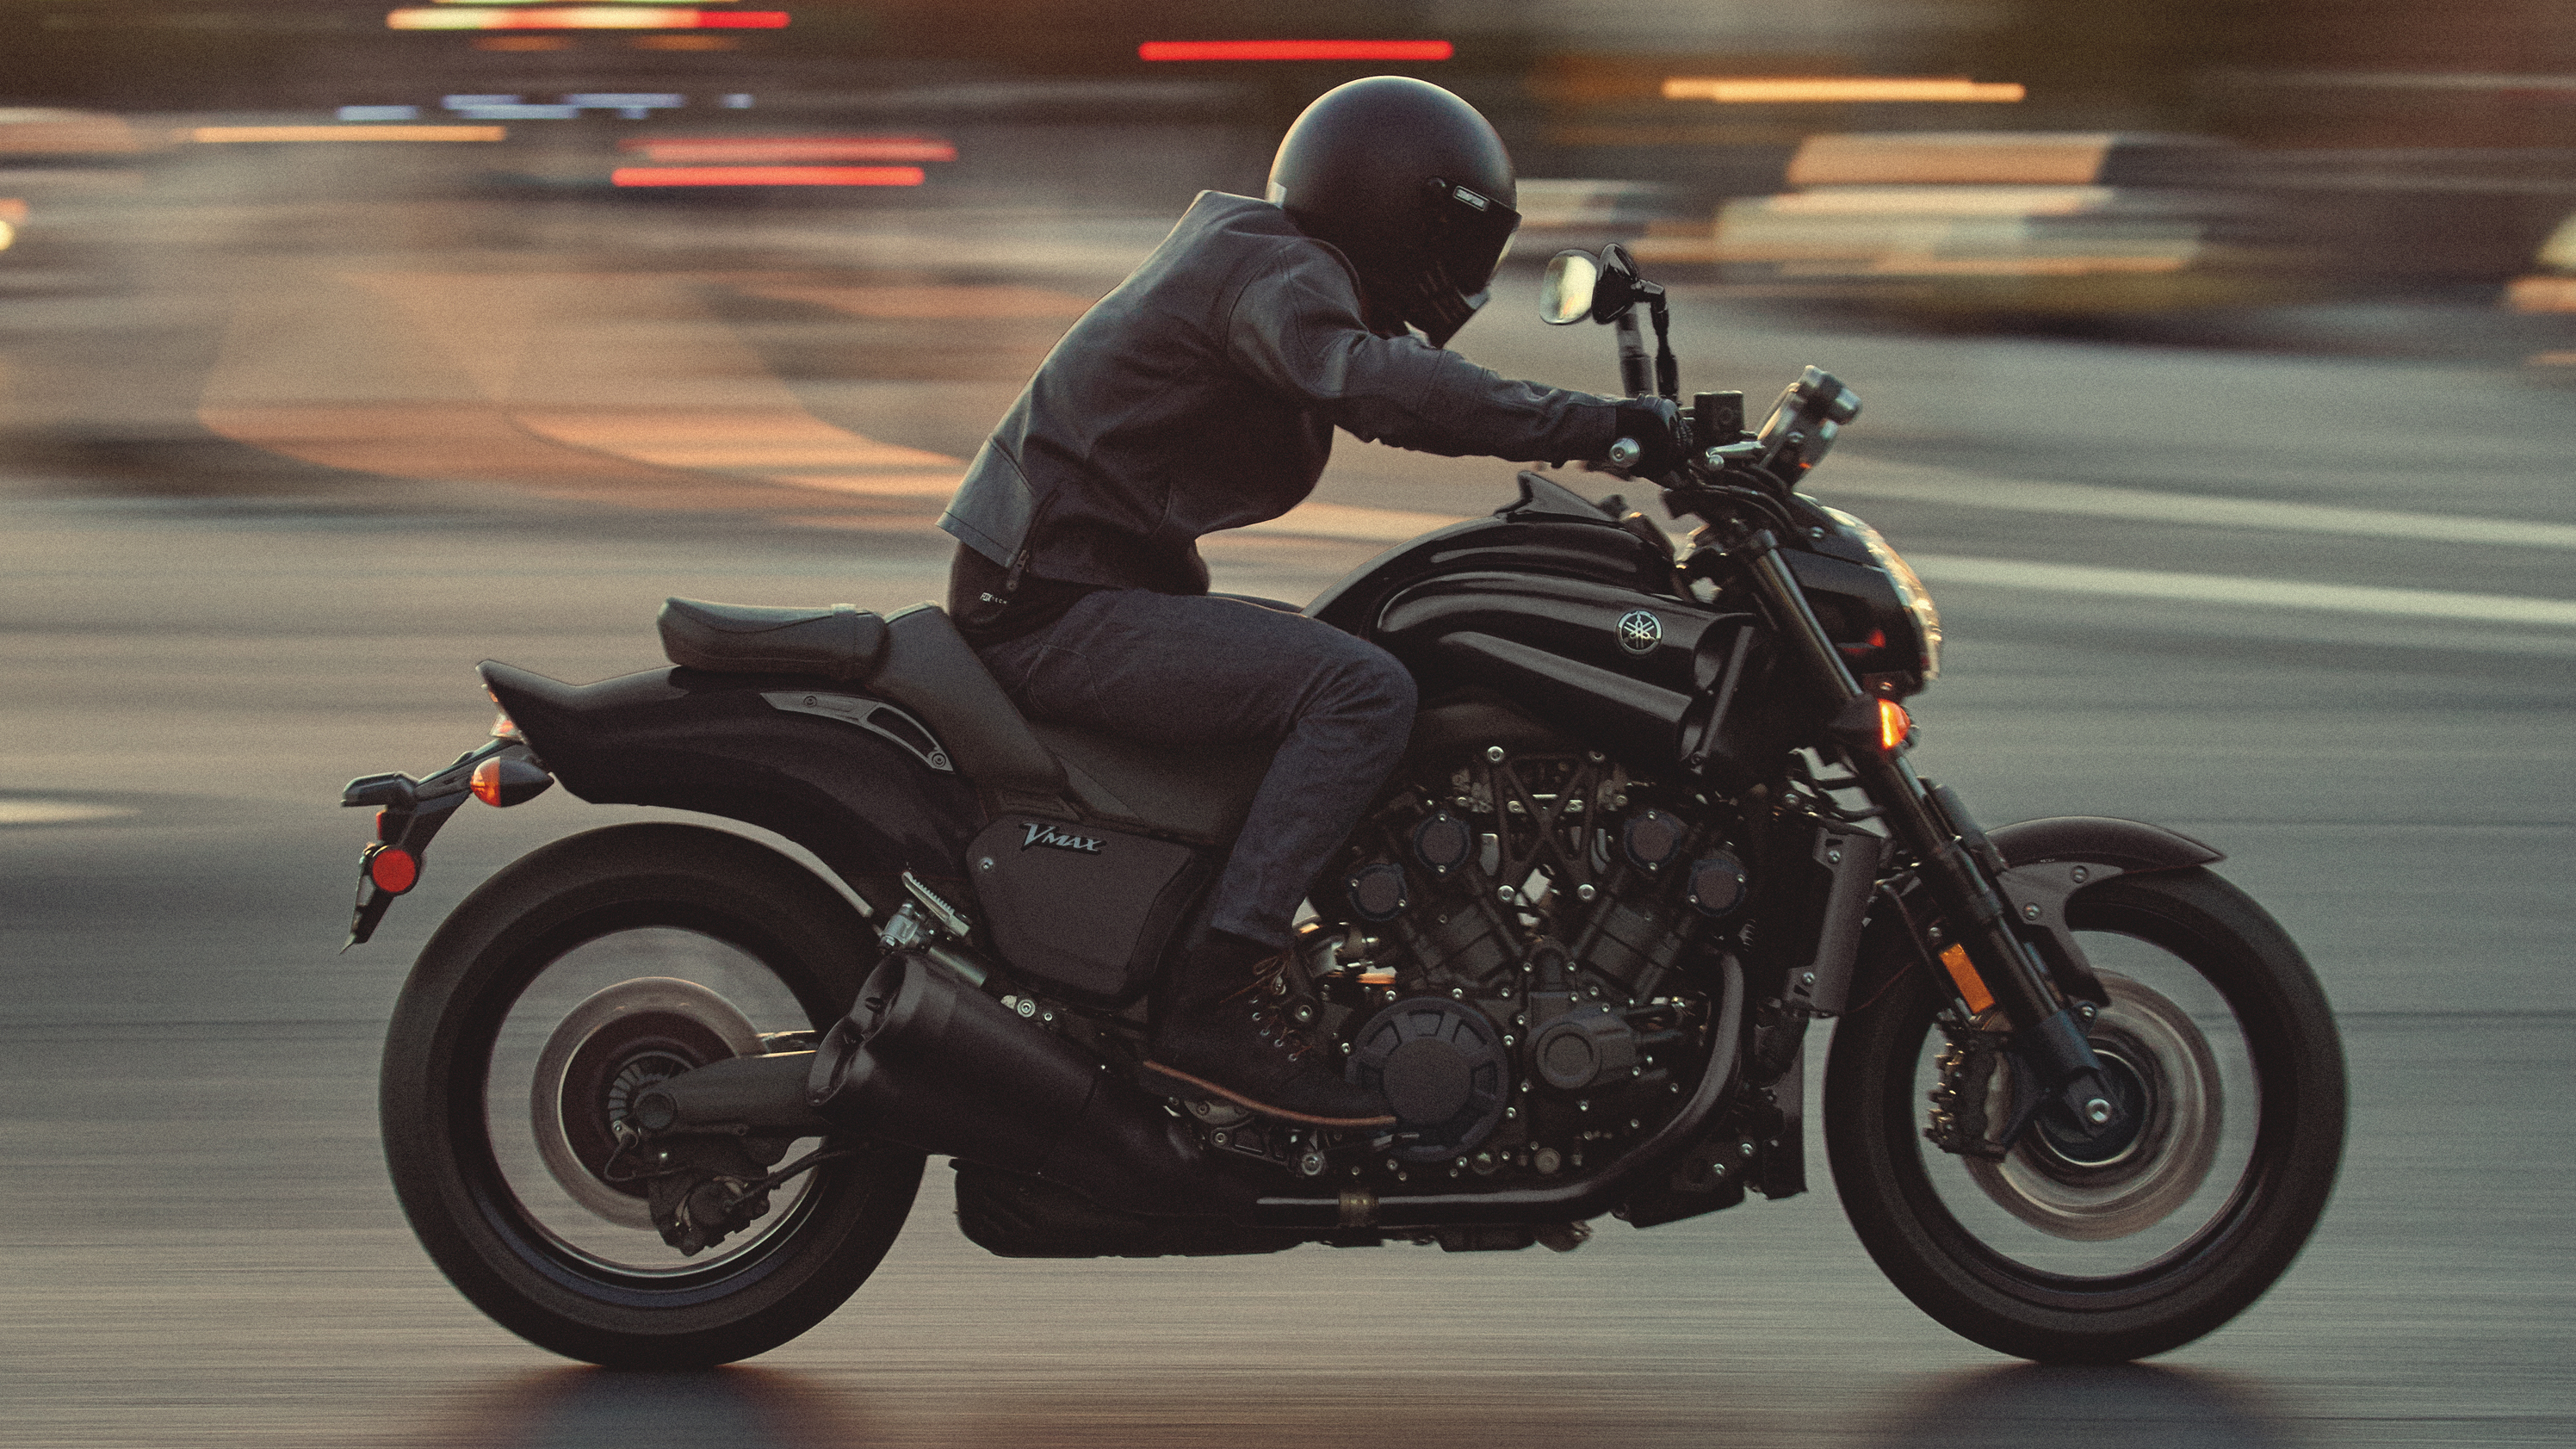 2016 - 2018 Yamaha VMAX | Top Speed